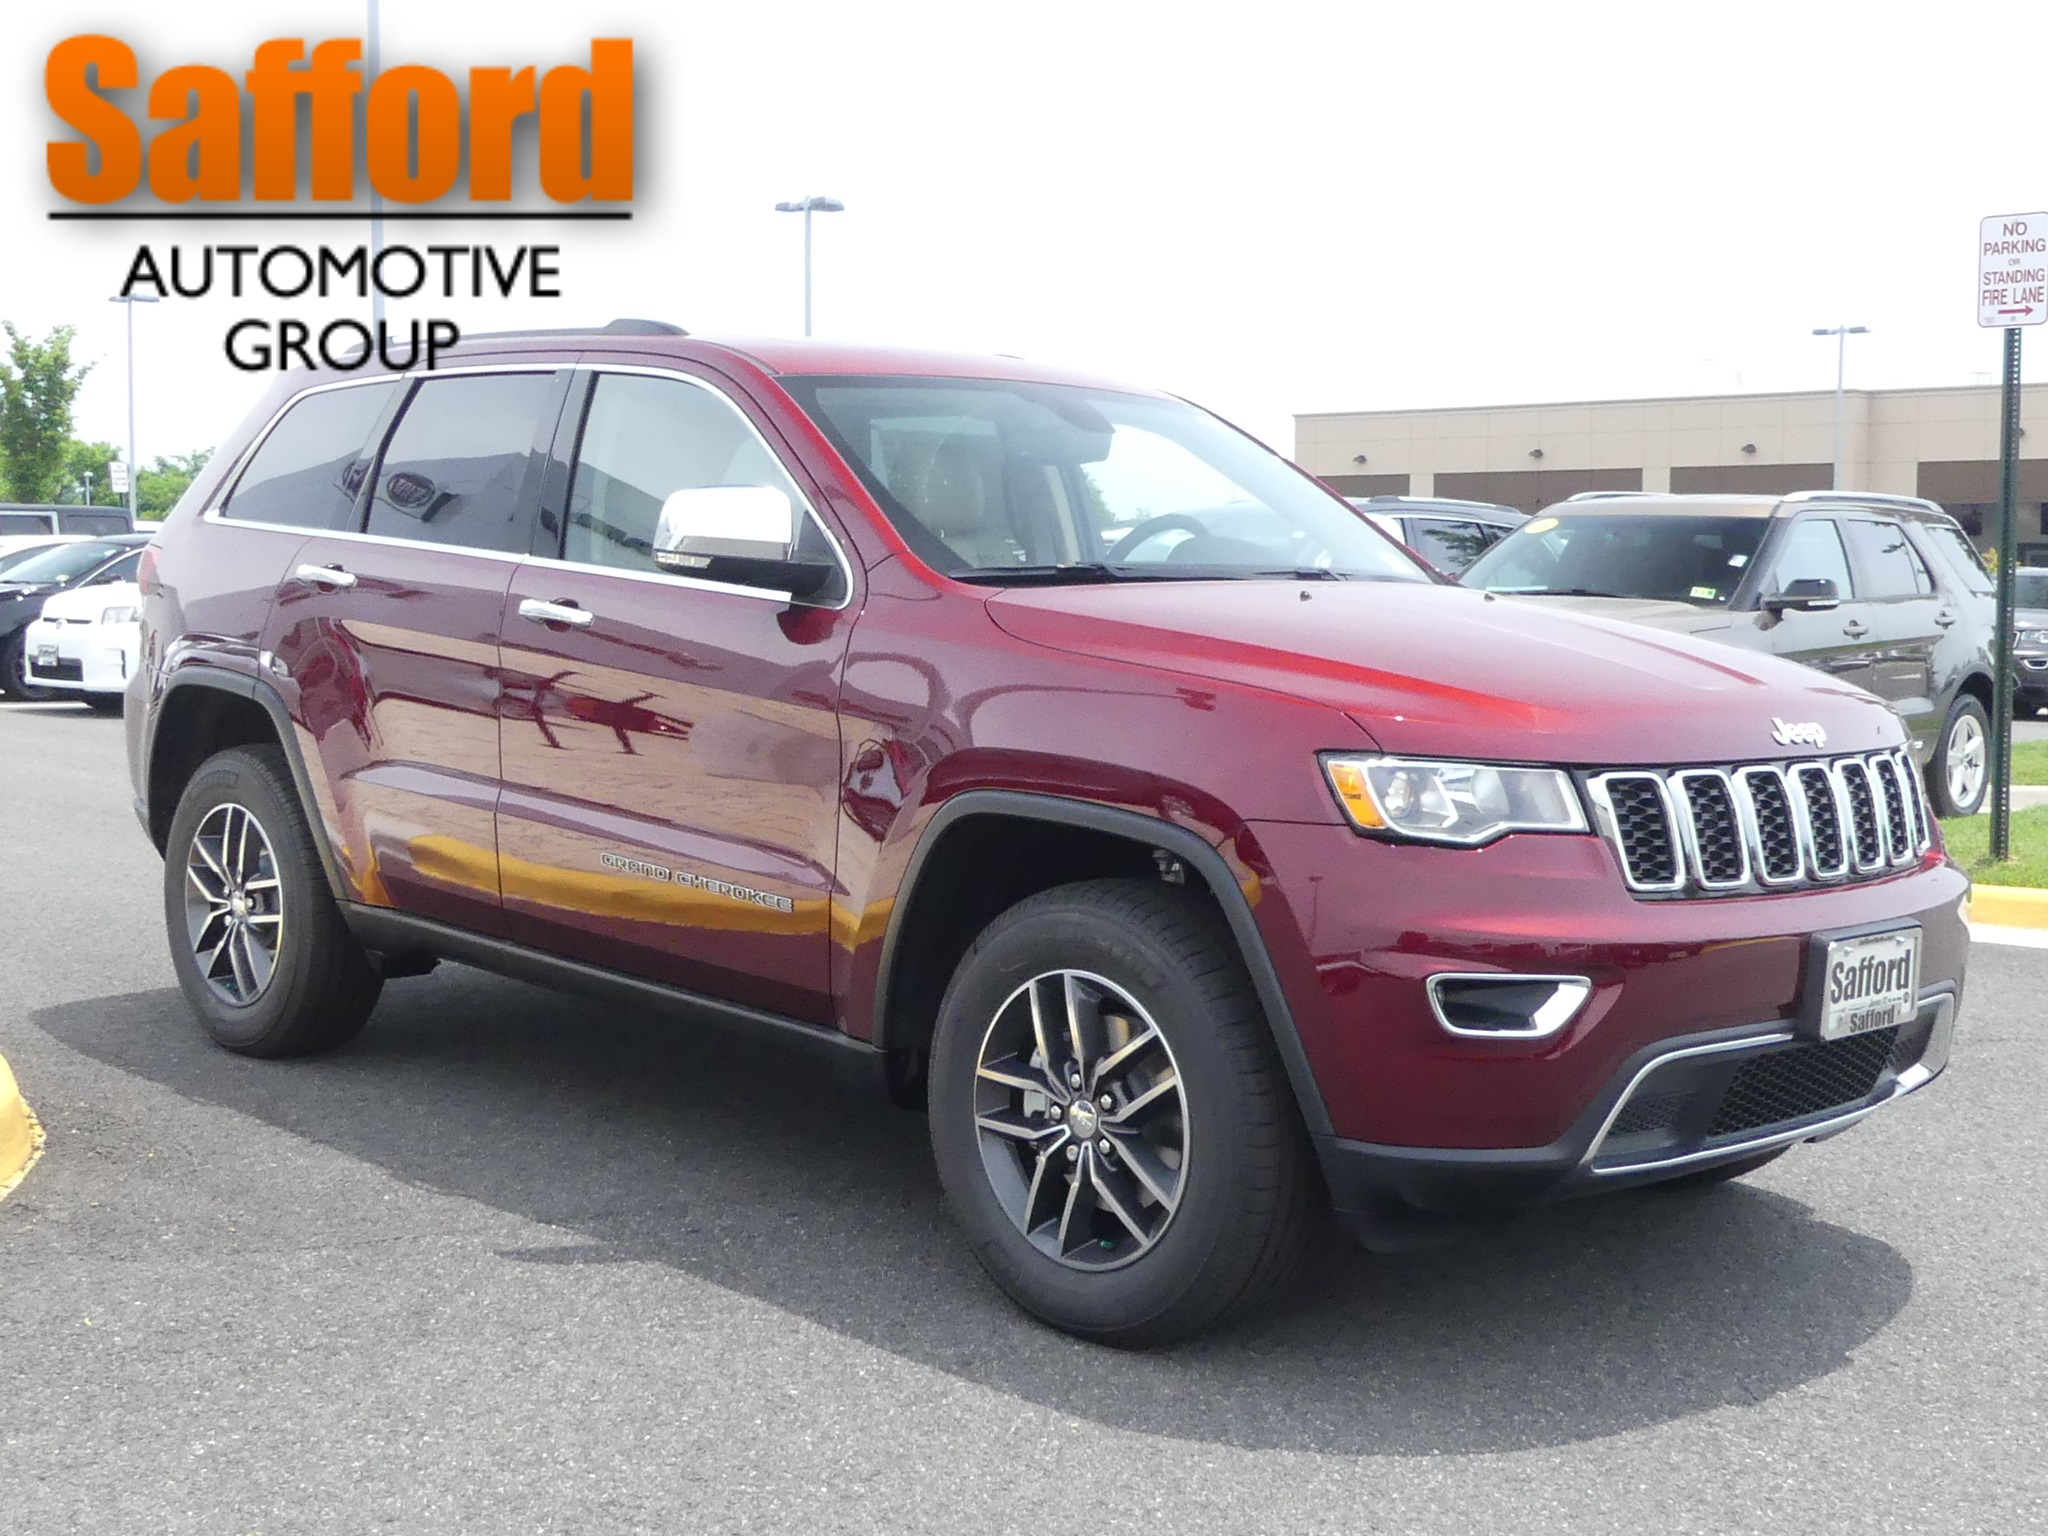 homan ripon in utility incentives compass sport jeep inventory limited new